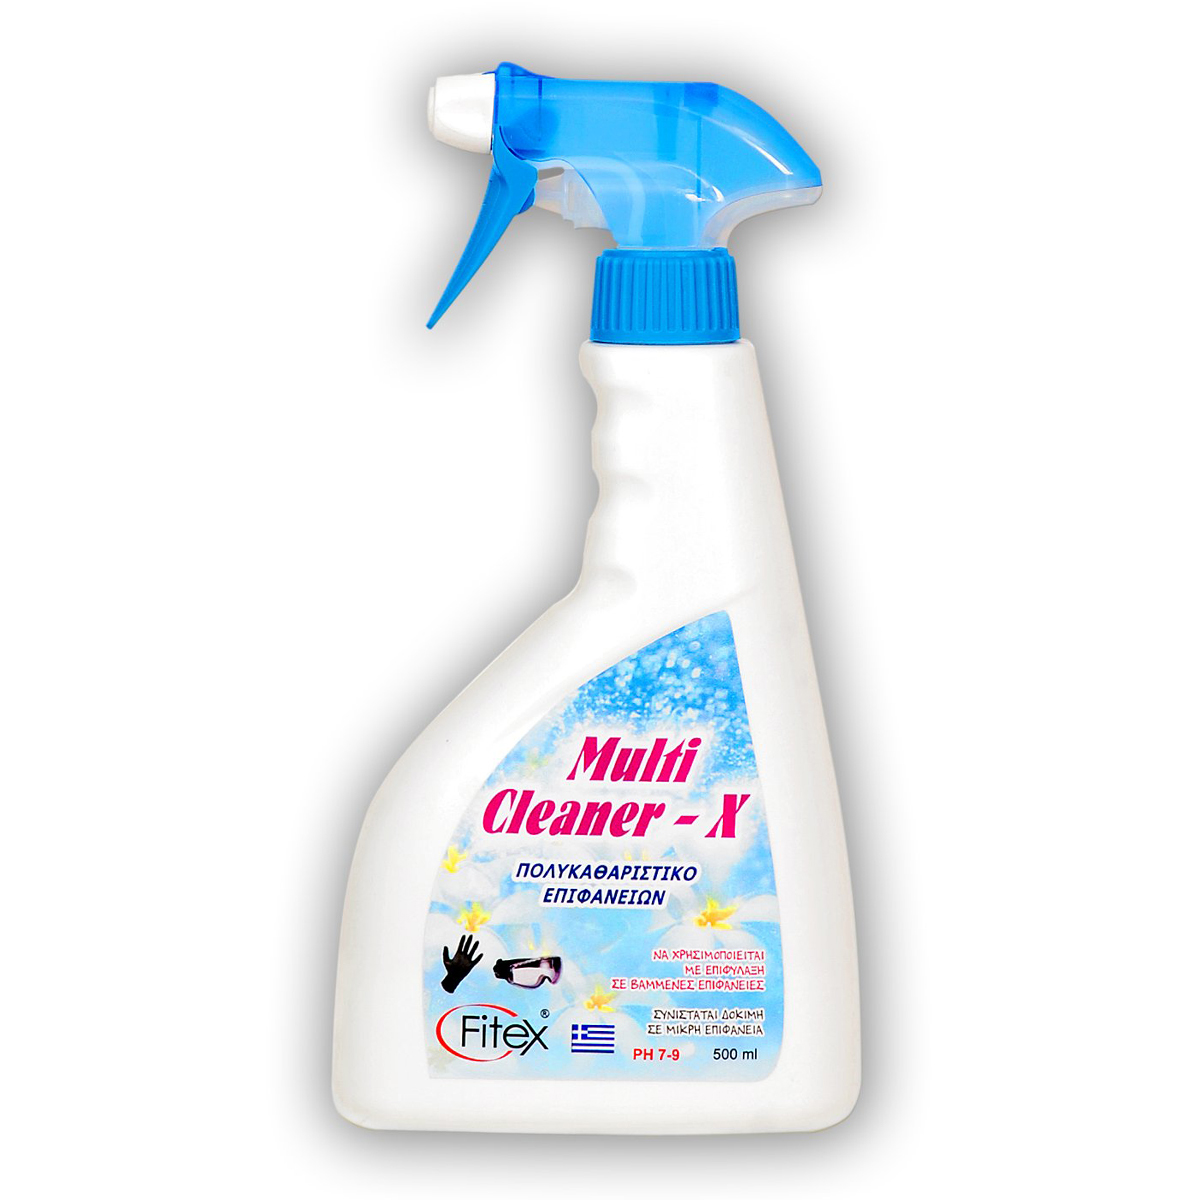 multi-cleaner-x